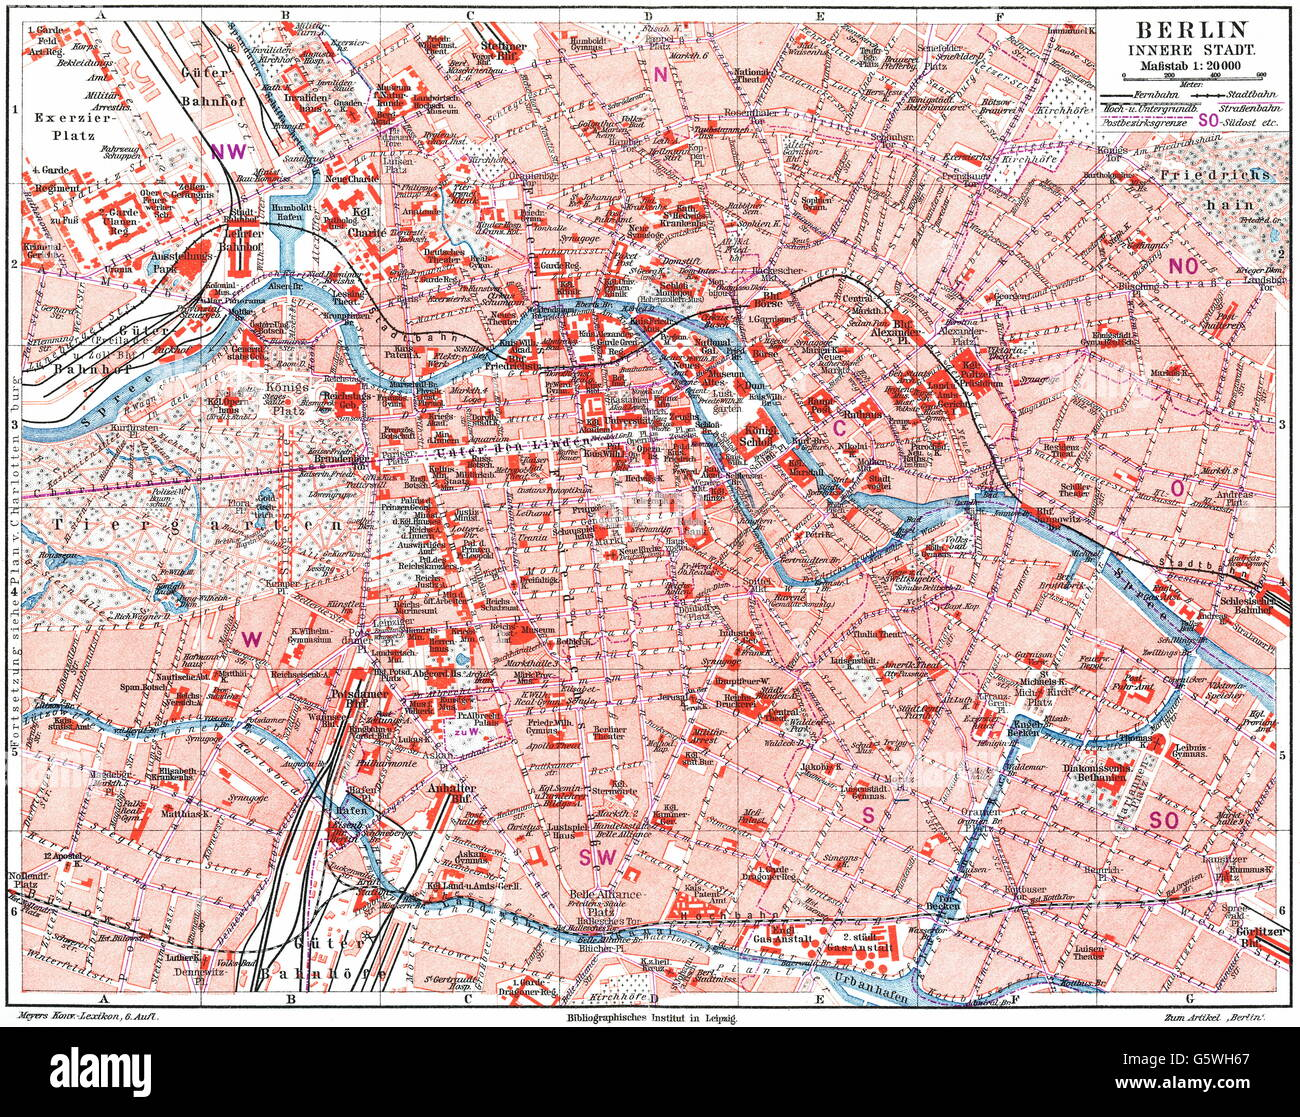 Berlin Map Of Germany.Cartography City Maps Germany Map Of Berlin Inner City Stock